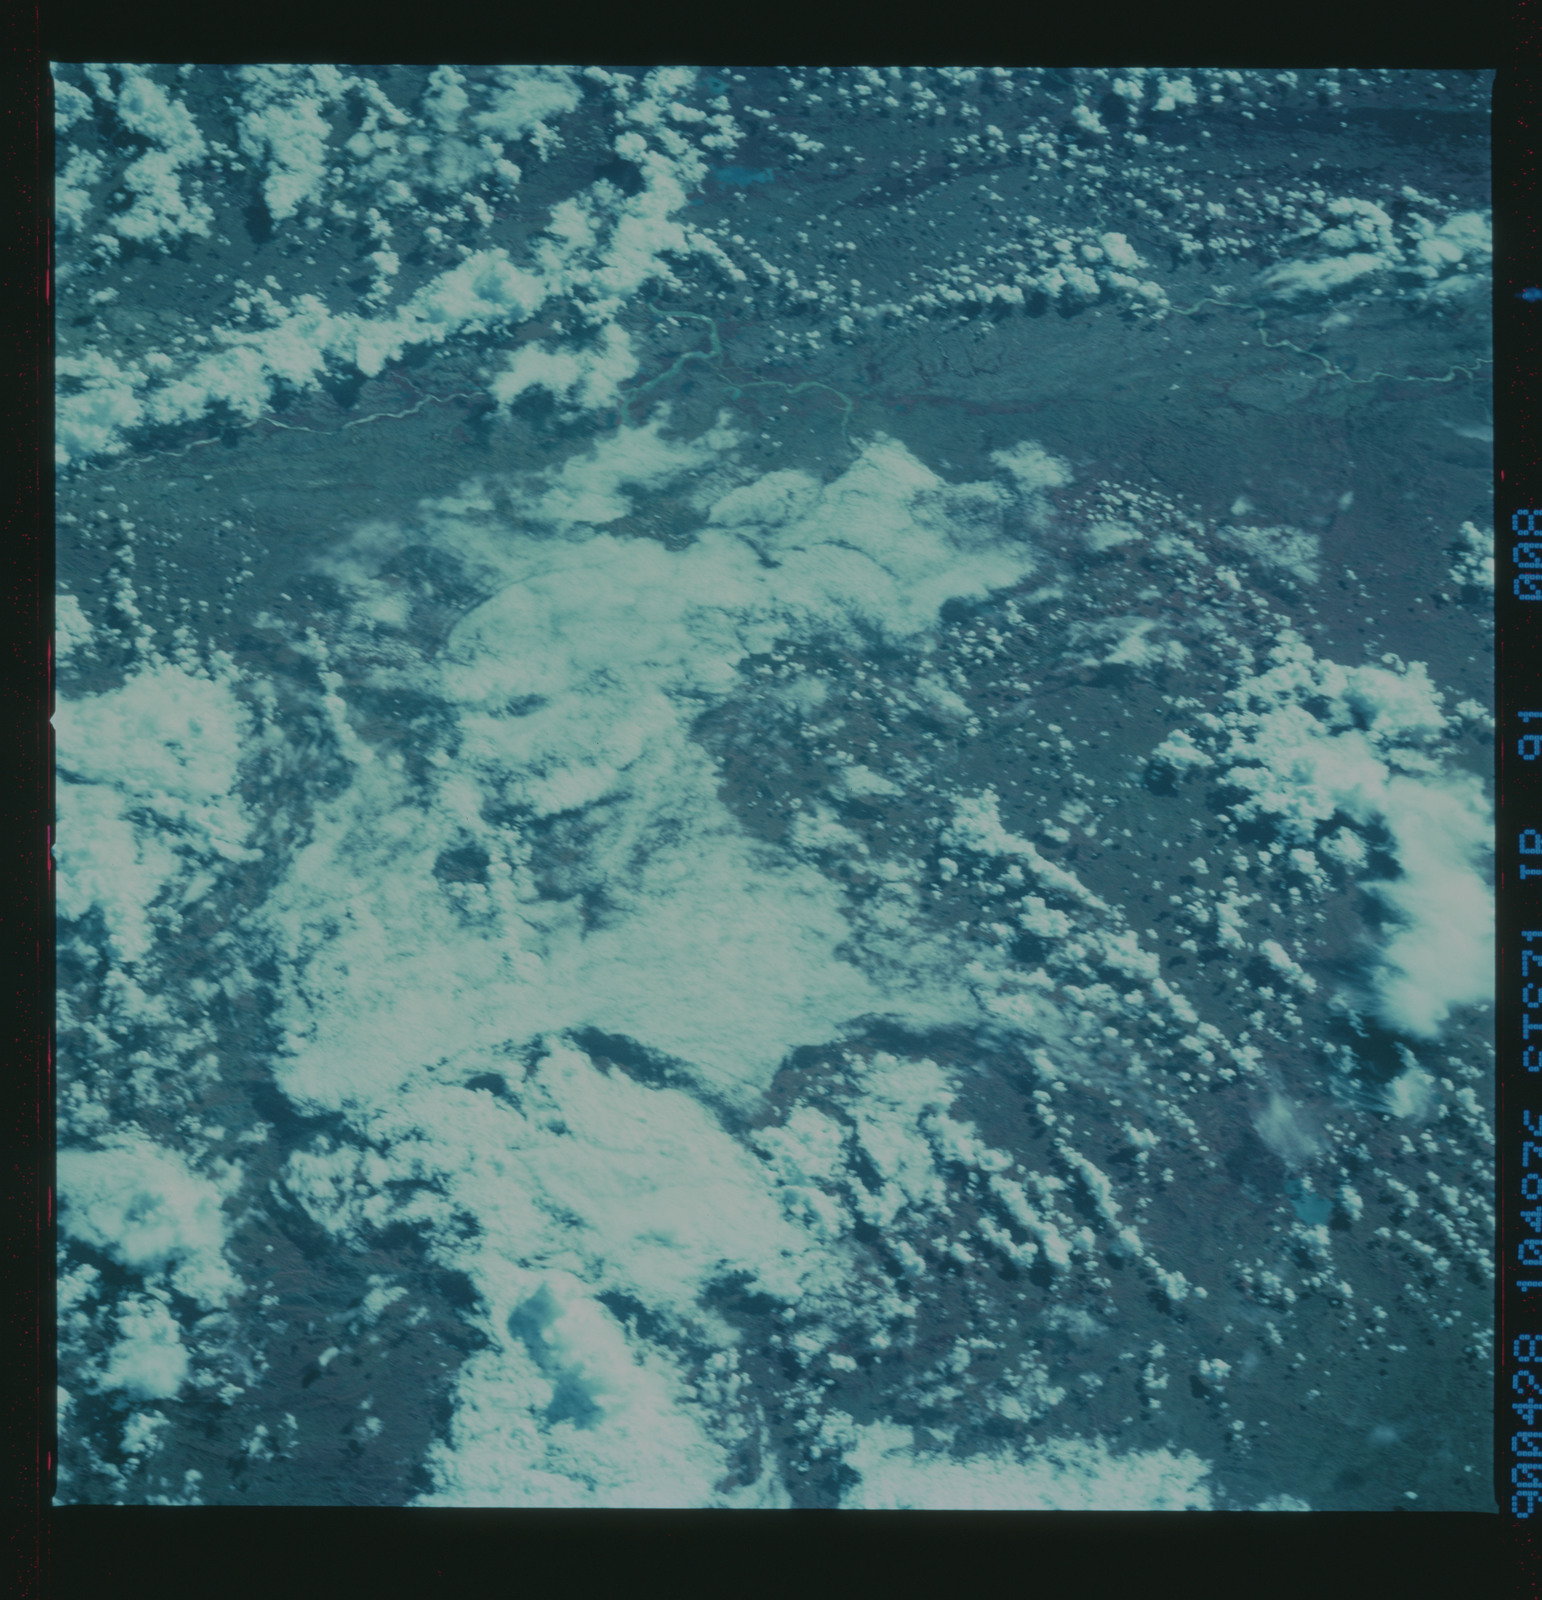 S31-91-008 - STS-031 - STS-31 earth observations